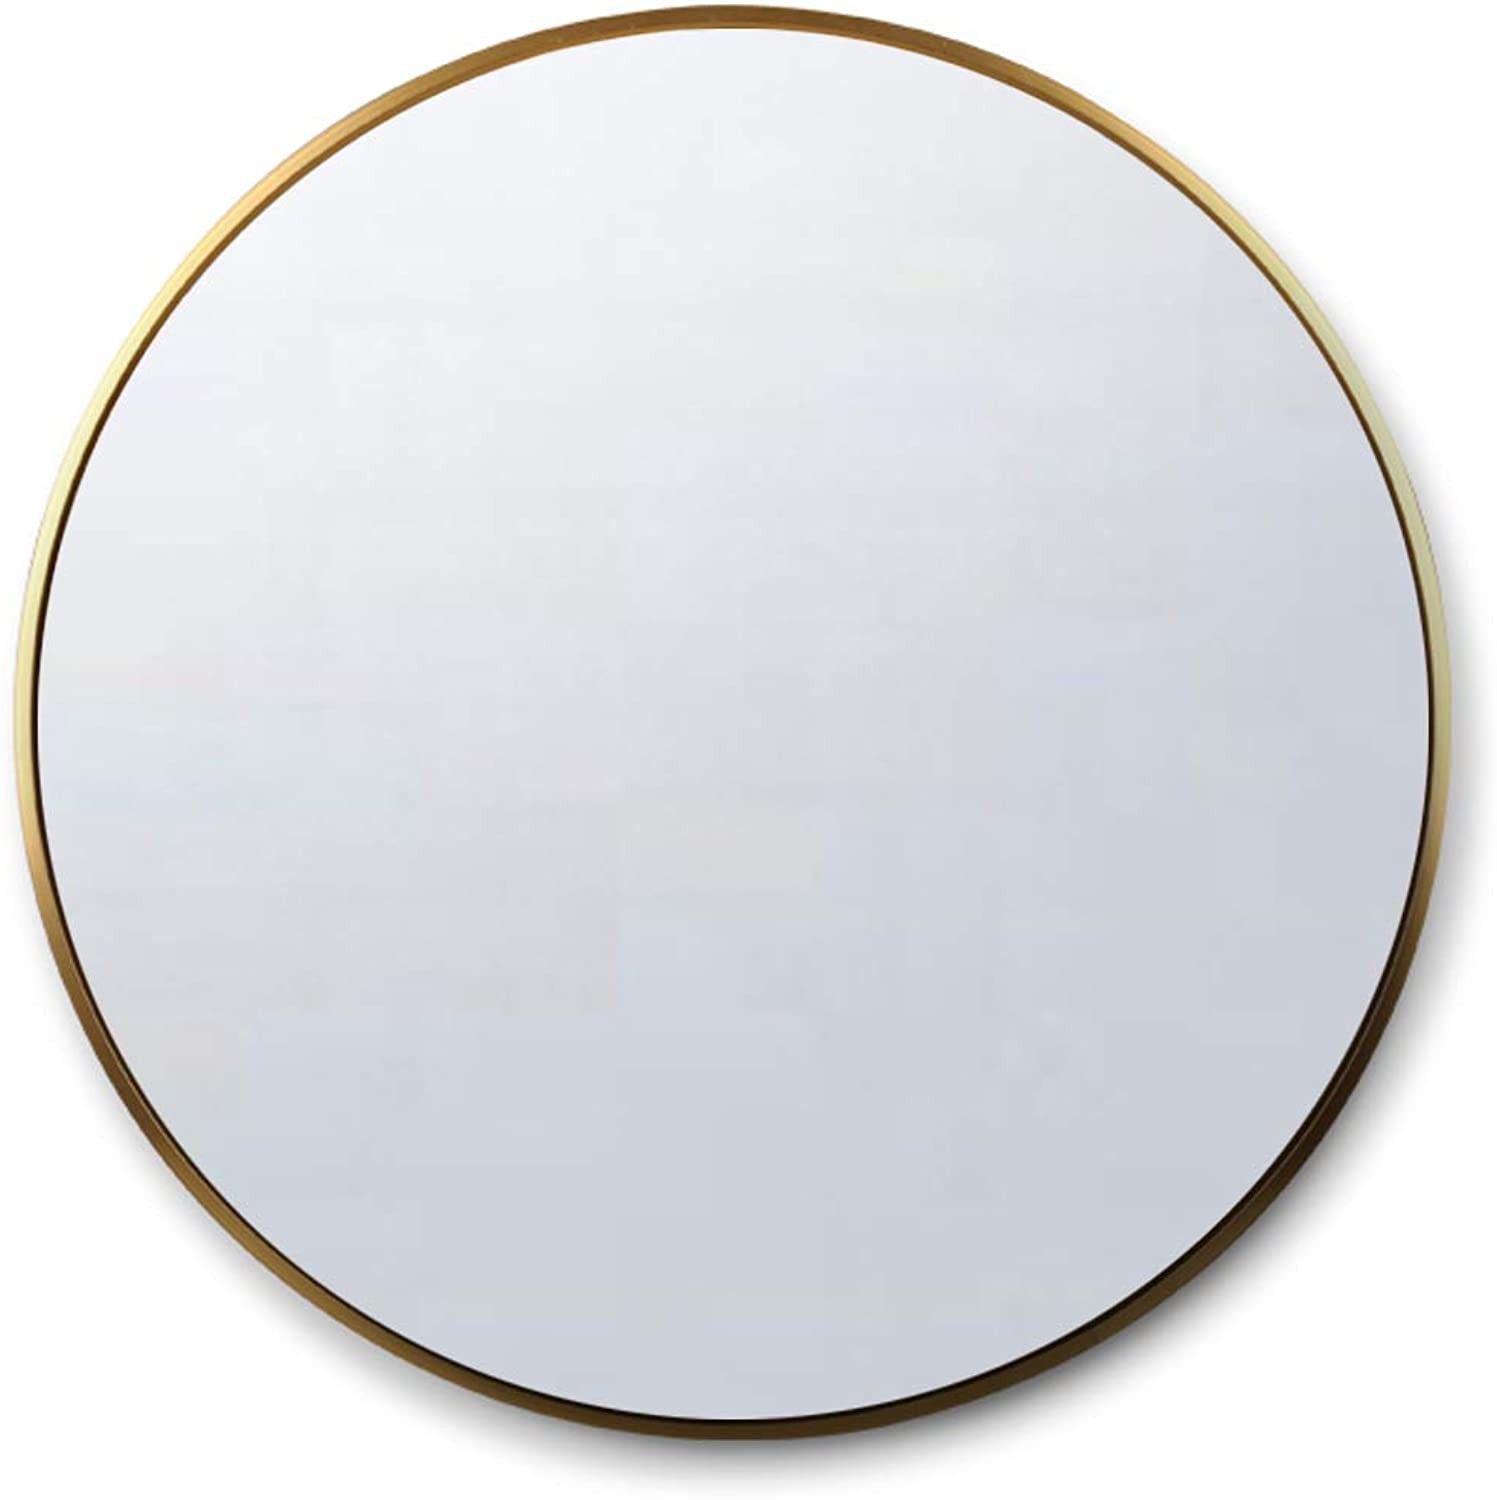 Makeup Mirror for Wall with Metal Frame(gold) 30CM Round Vanity Mirror Shave Shower Decorative Mirror for Bathroom Entry Dining Room Living Room and More